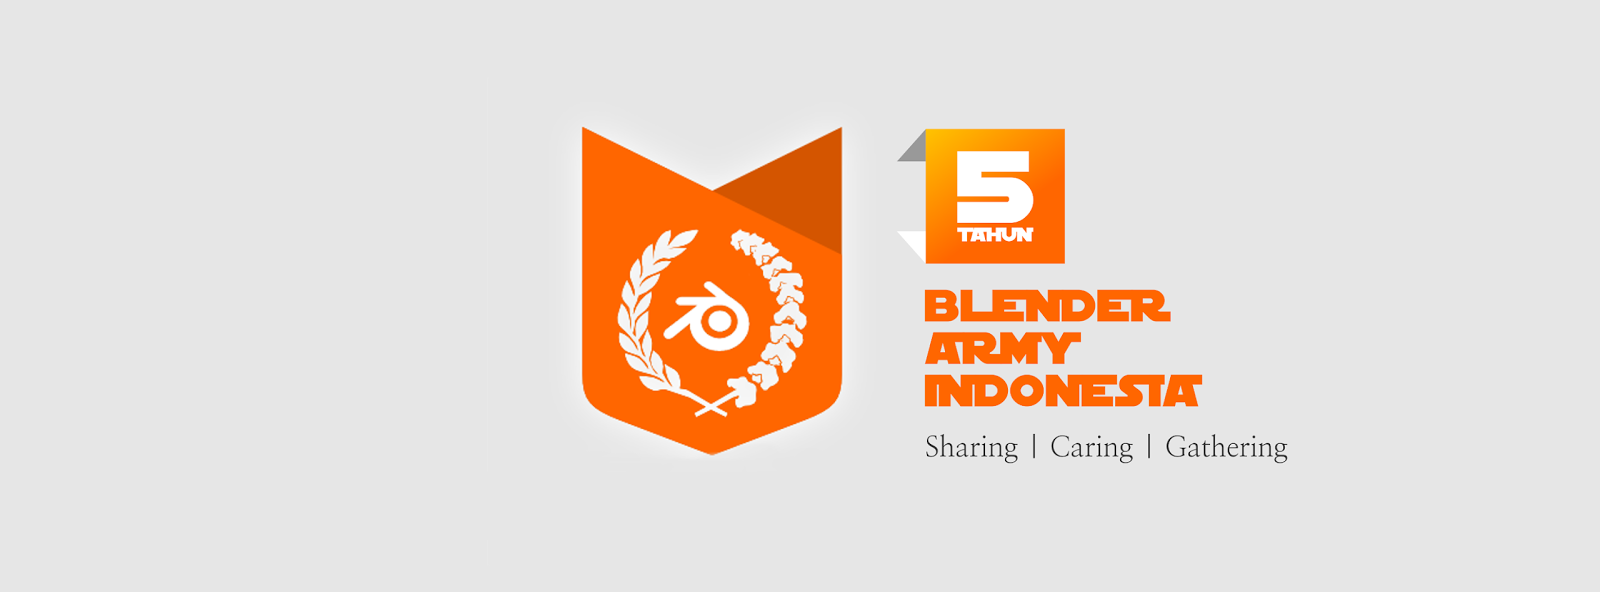 blender army indonesia